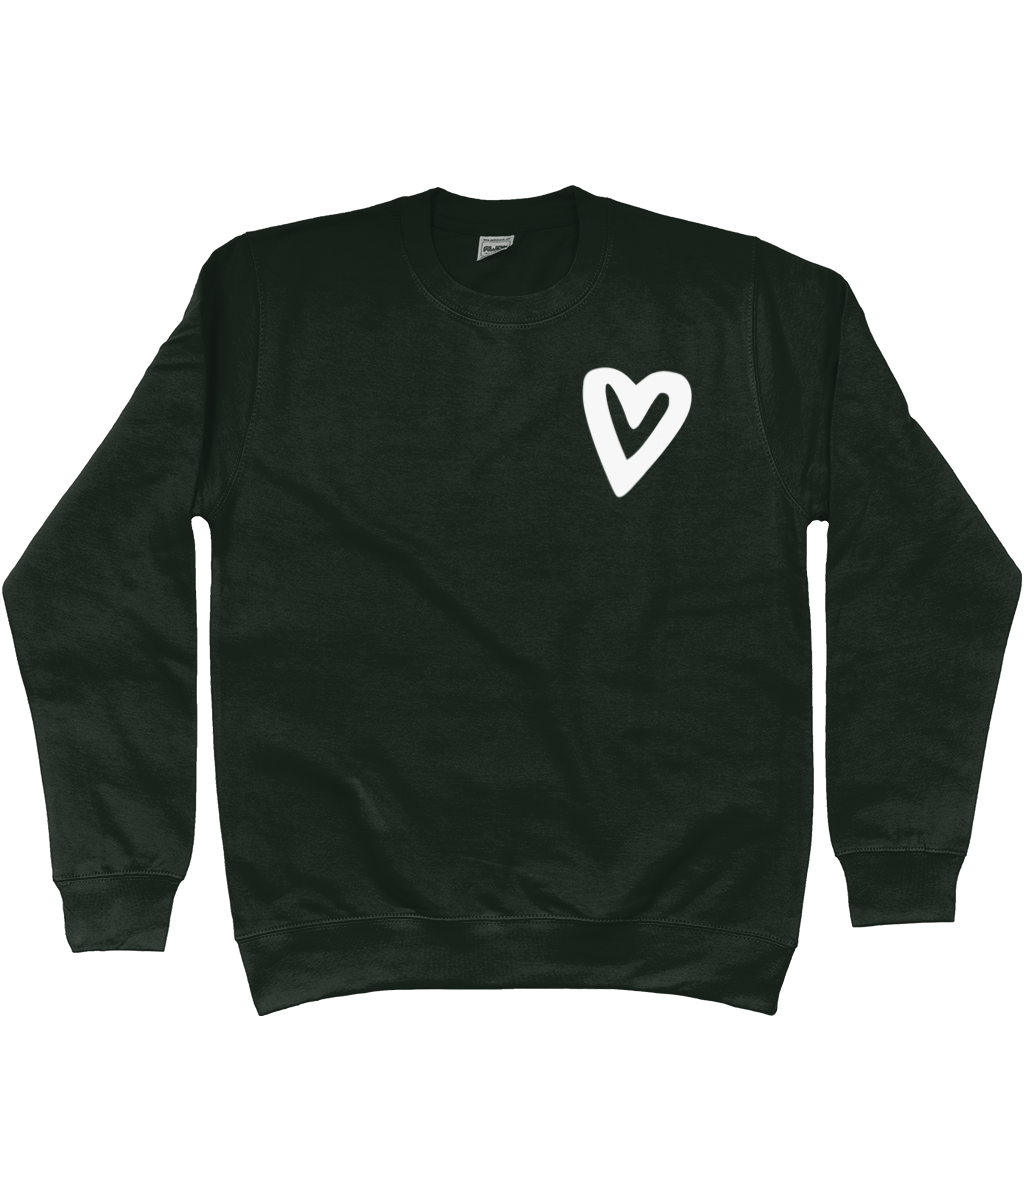 Small Urban Heart White Kids Jumper Sweatshirt